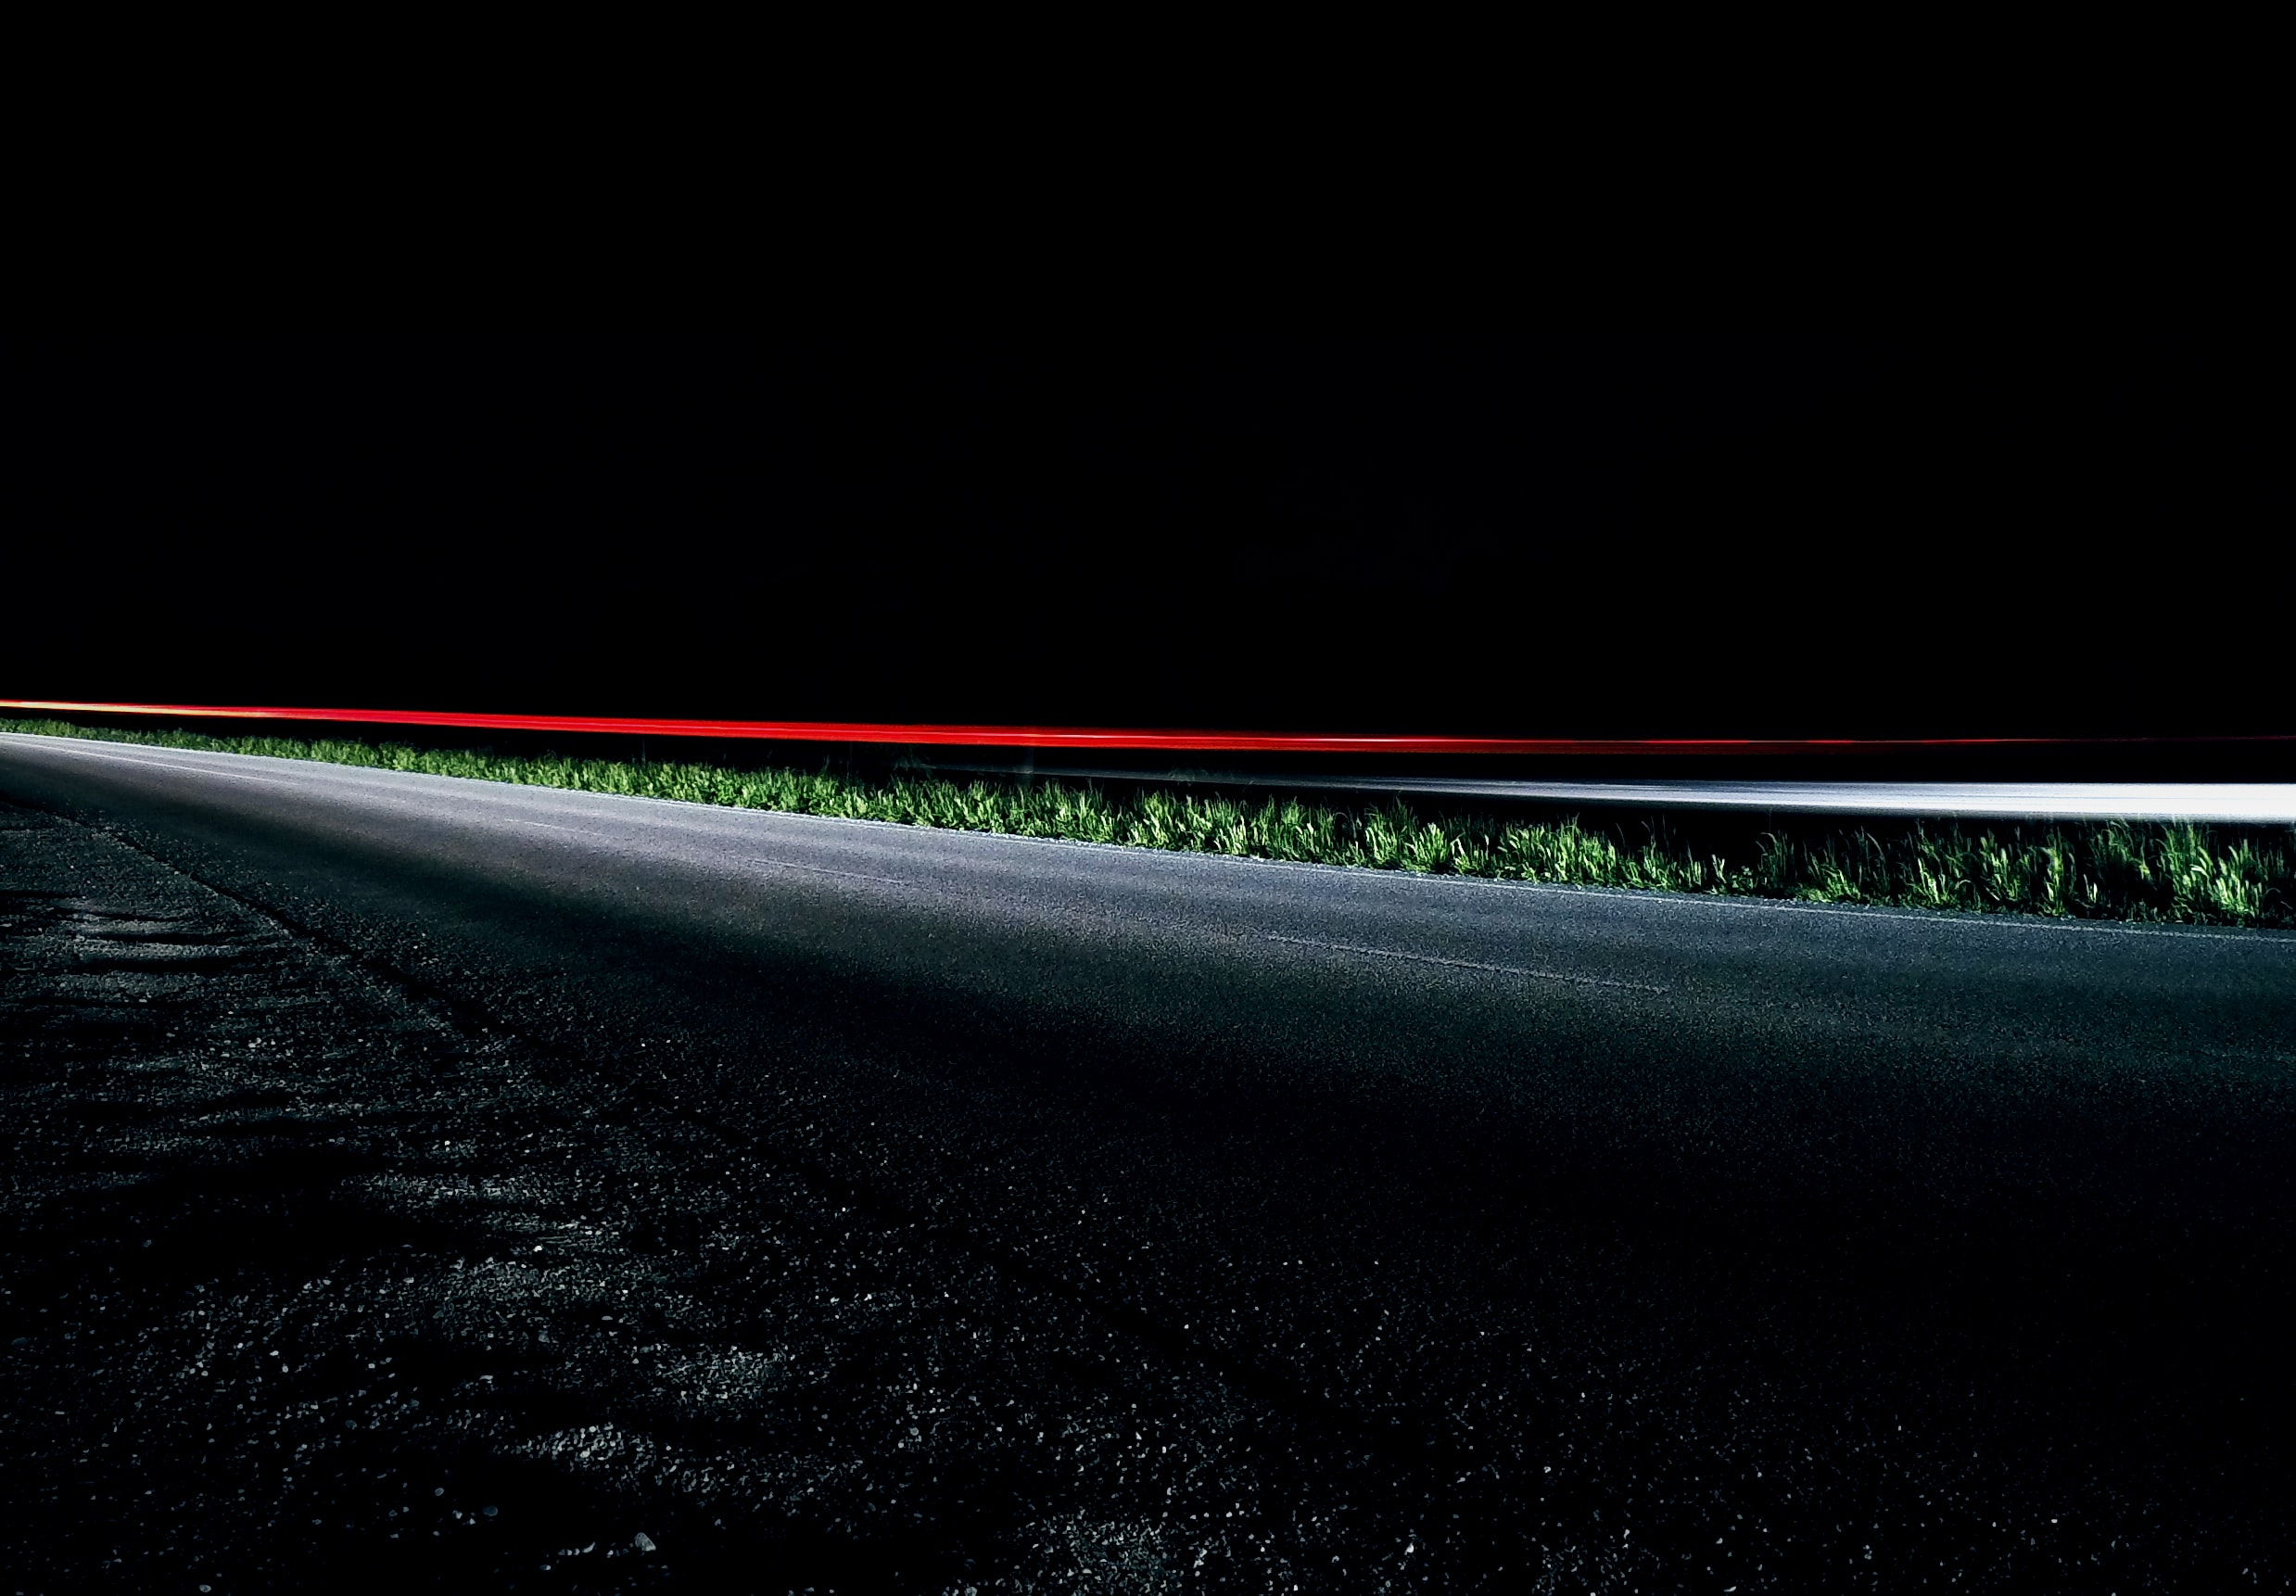 Time lapse red car light at night on road with asphalt and grass, Casale Sul Sile